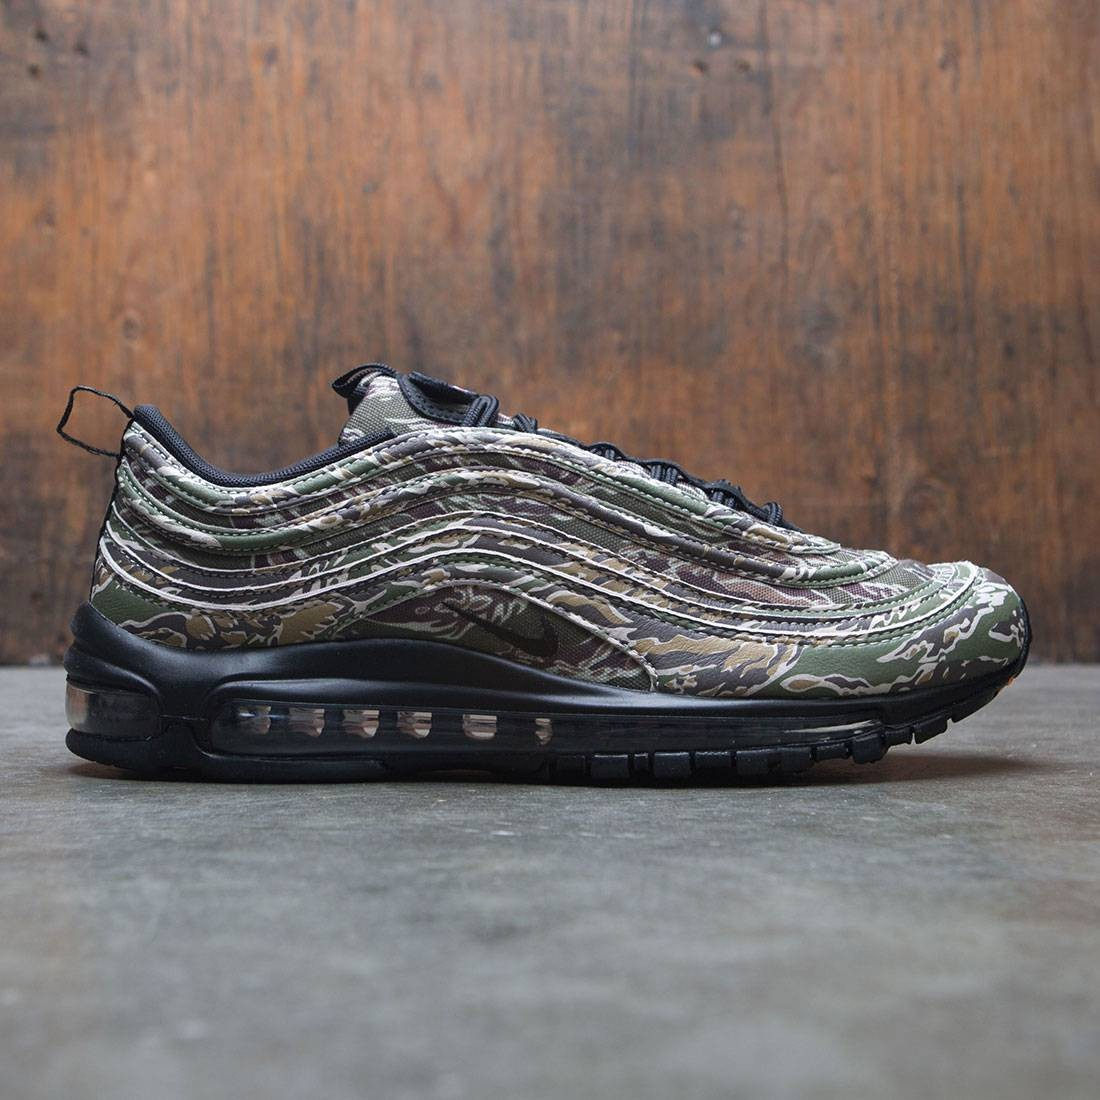 fluido impaciente piel  nike men air max 97 premium camo pack medium olive black desert sand  ridgerock